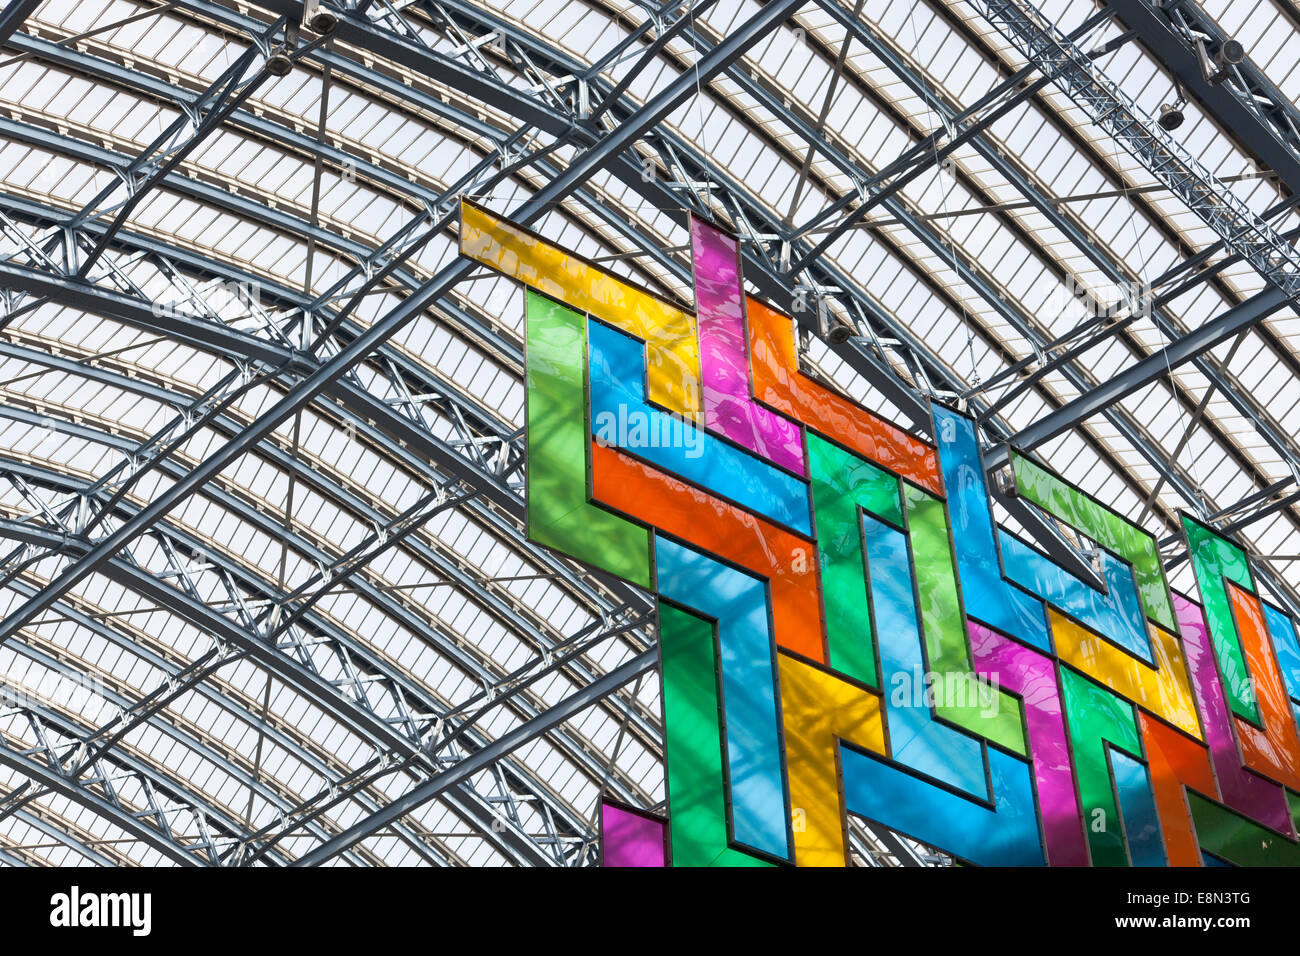 Chromolocomotion by David Batchelor hanging at St. Pancras Internation Station in London, April 2014 - Stock Image